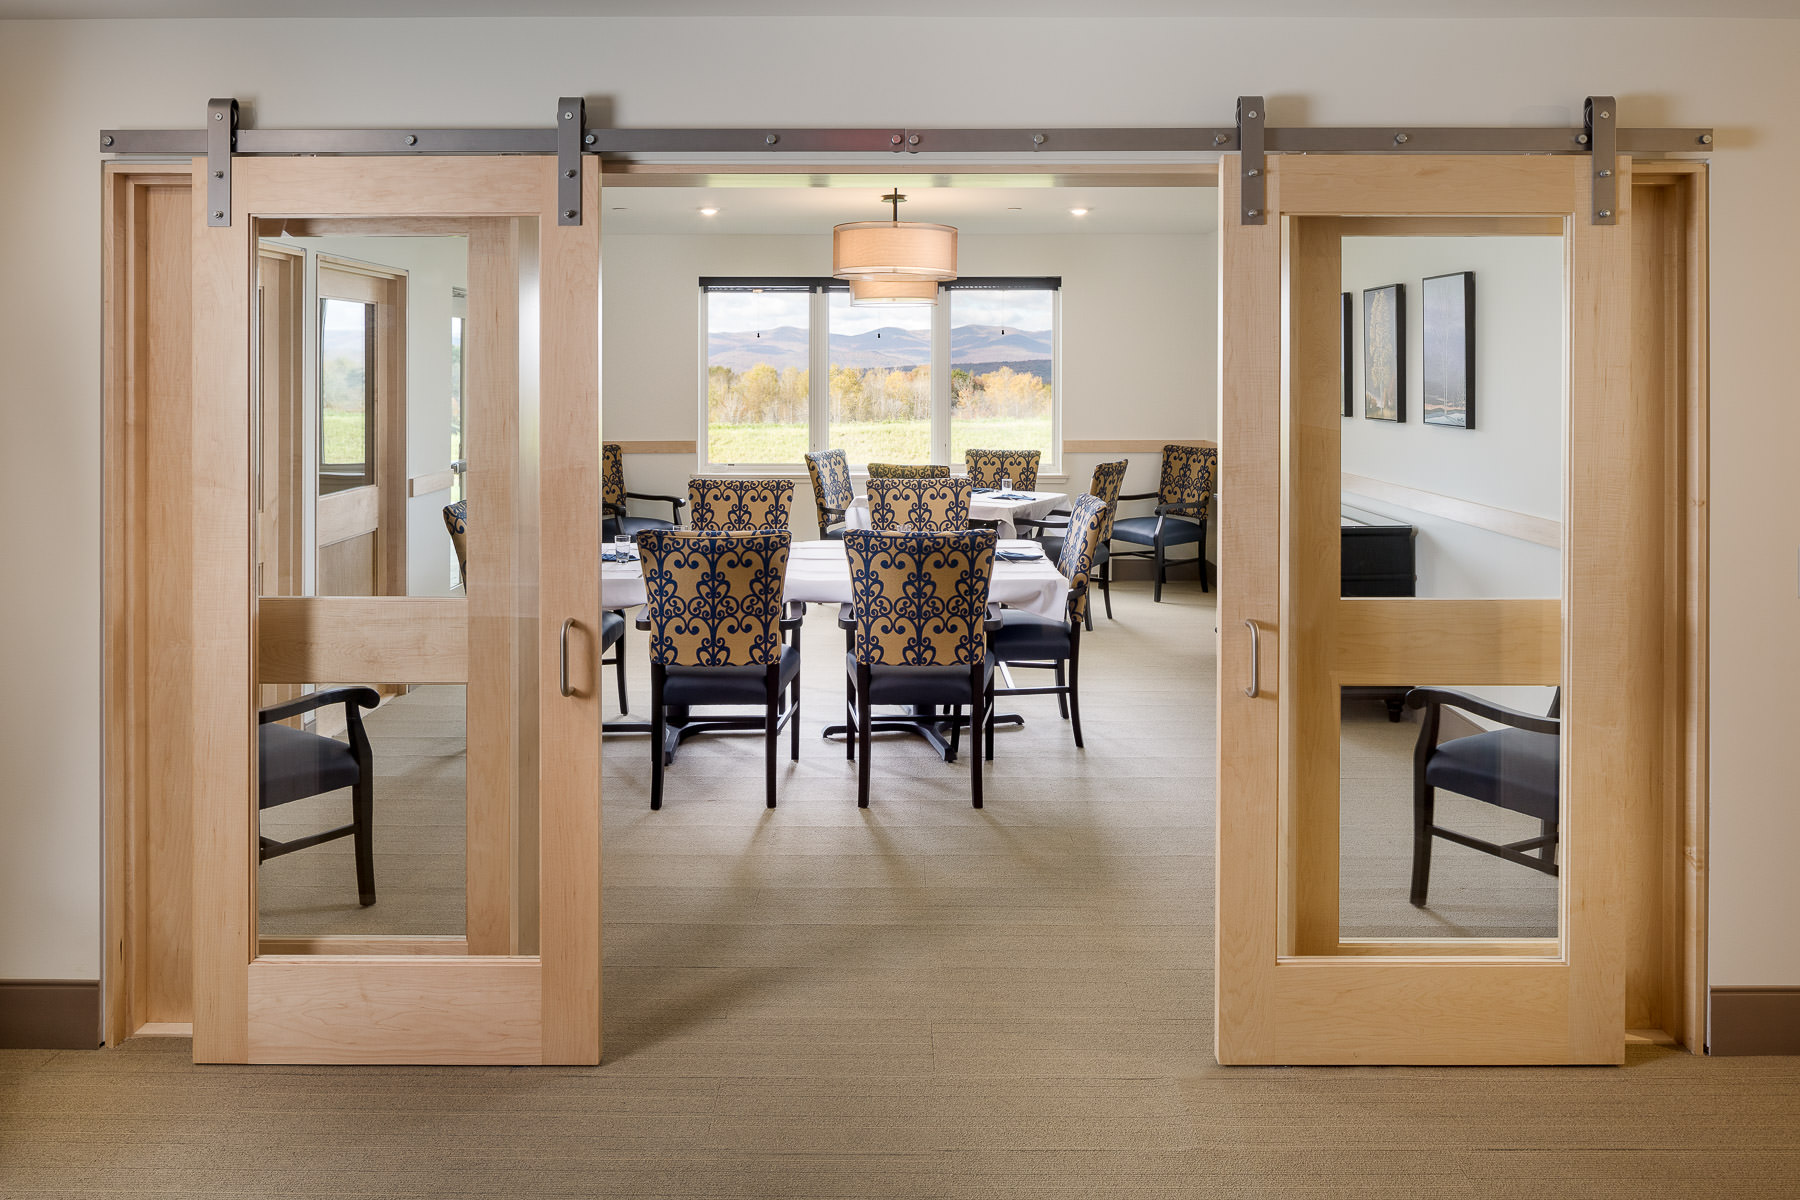 photo of the private dining room in the Strode Independent Living Facility in Randolph by Vermont commercial photographer Stina Booth